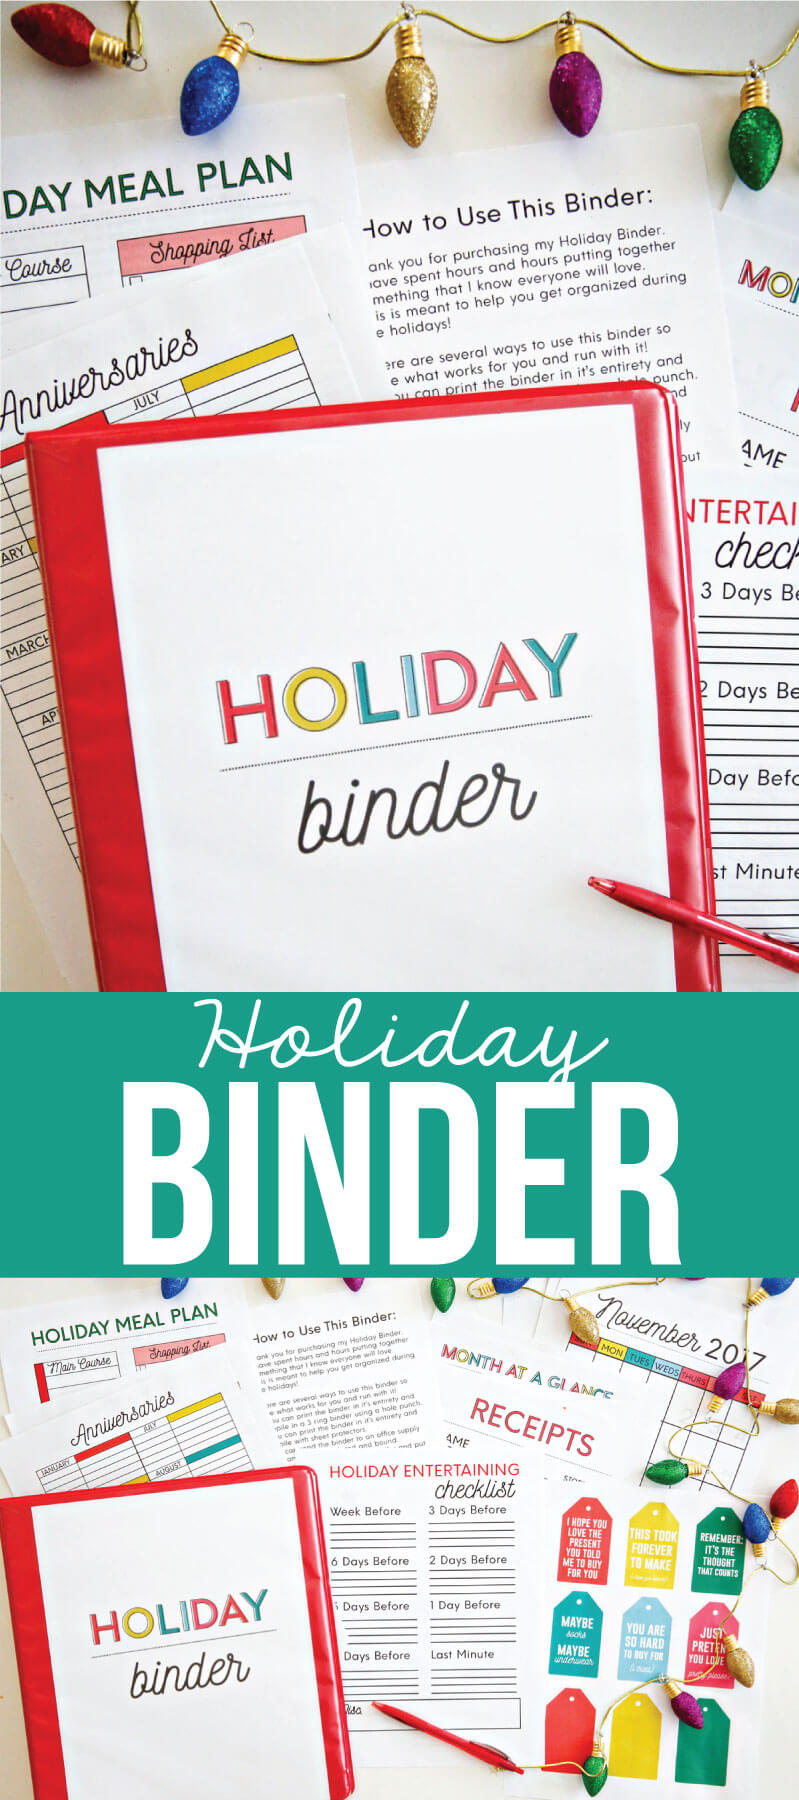 Printable Holiday Binder - get the entire binder to download and print for the holidays. from www.thirtyhandmadedays.com